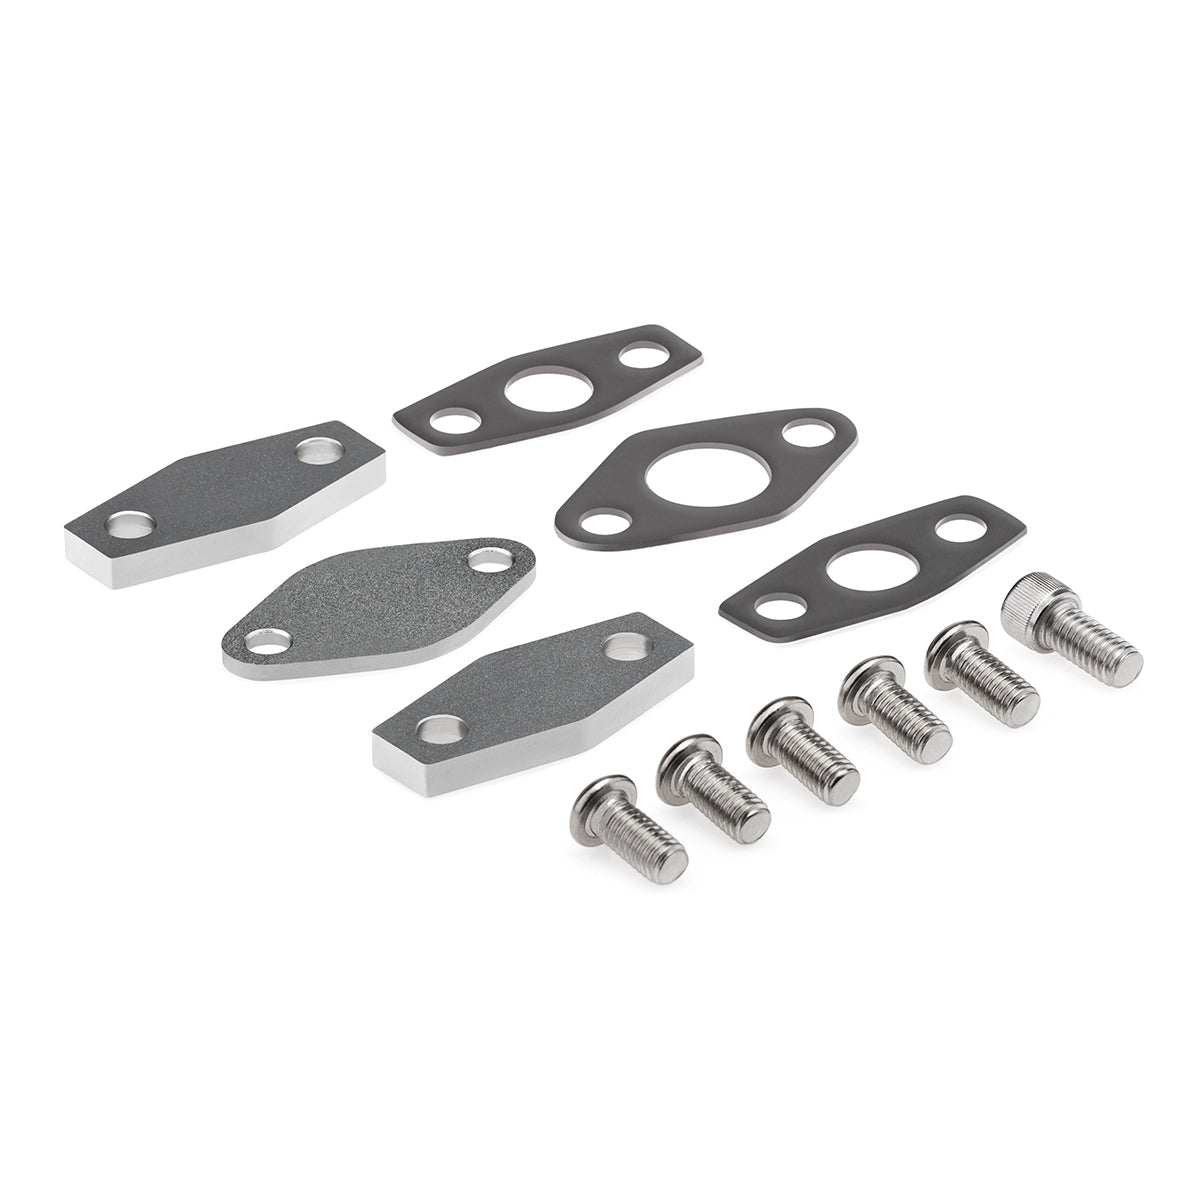 1998-2000 Chevy Camaro LS1 EGR Block Off Plates + Air Smog Delete Kit-Block Off Plate-Blackpathinc